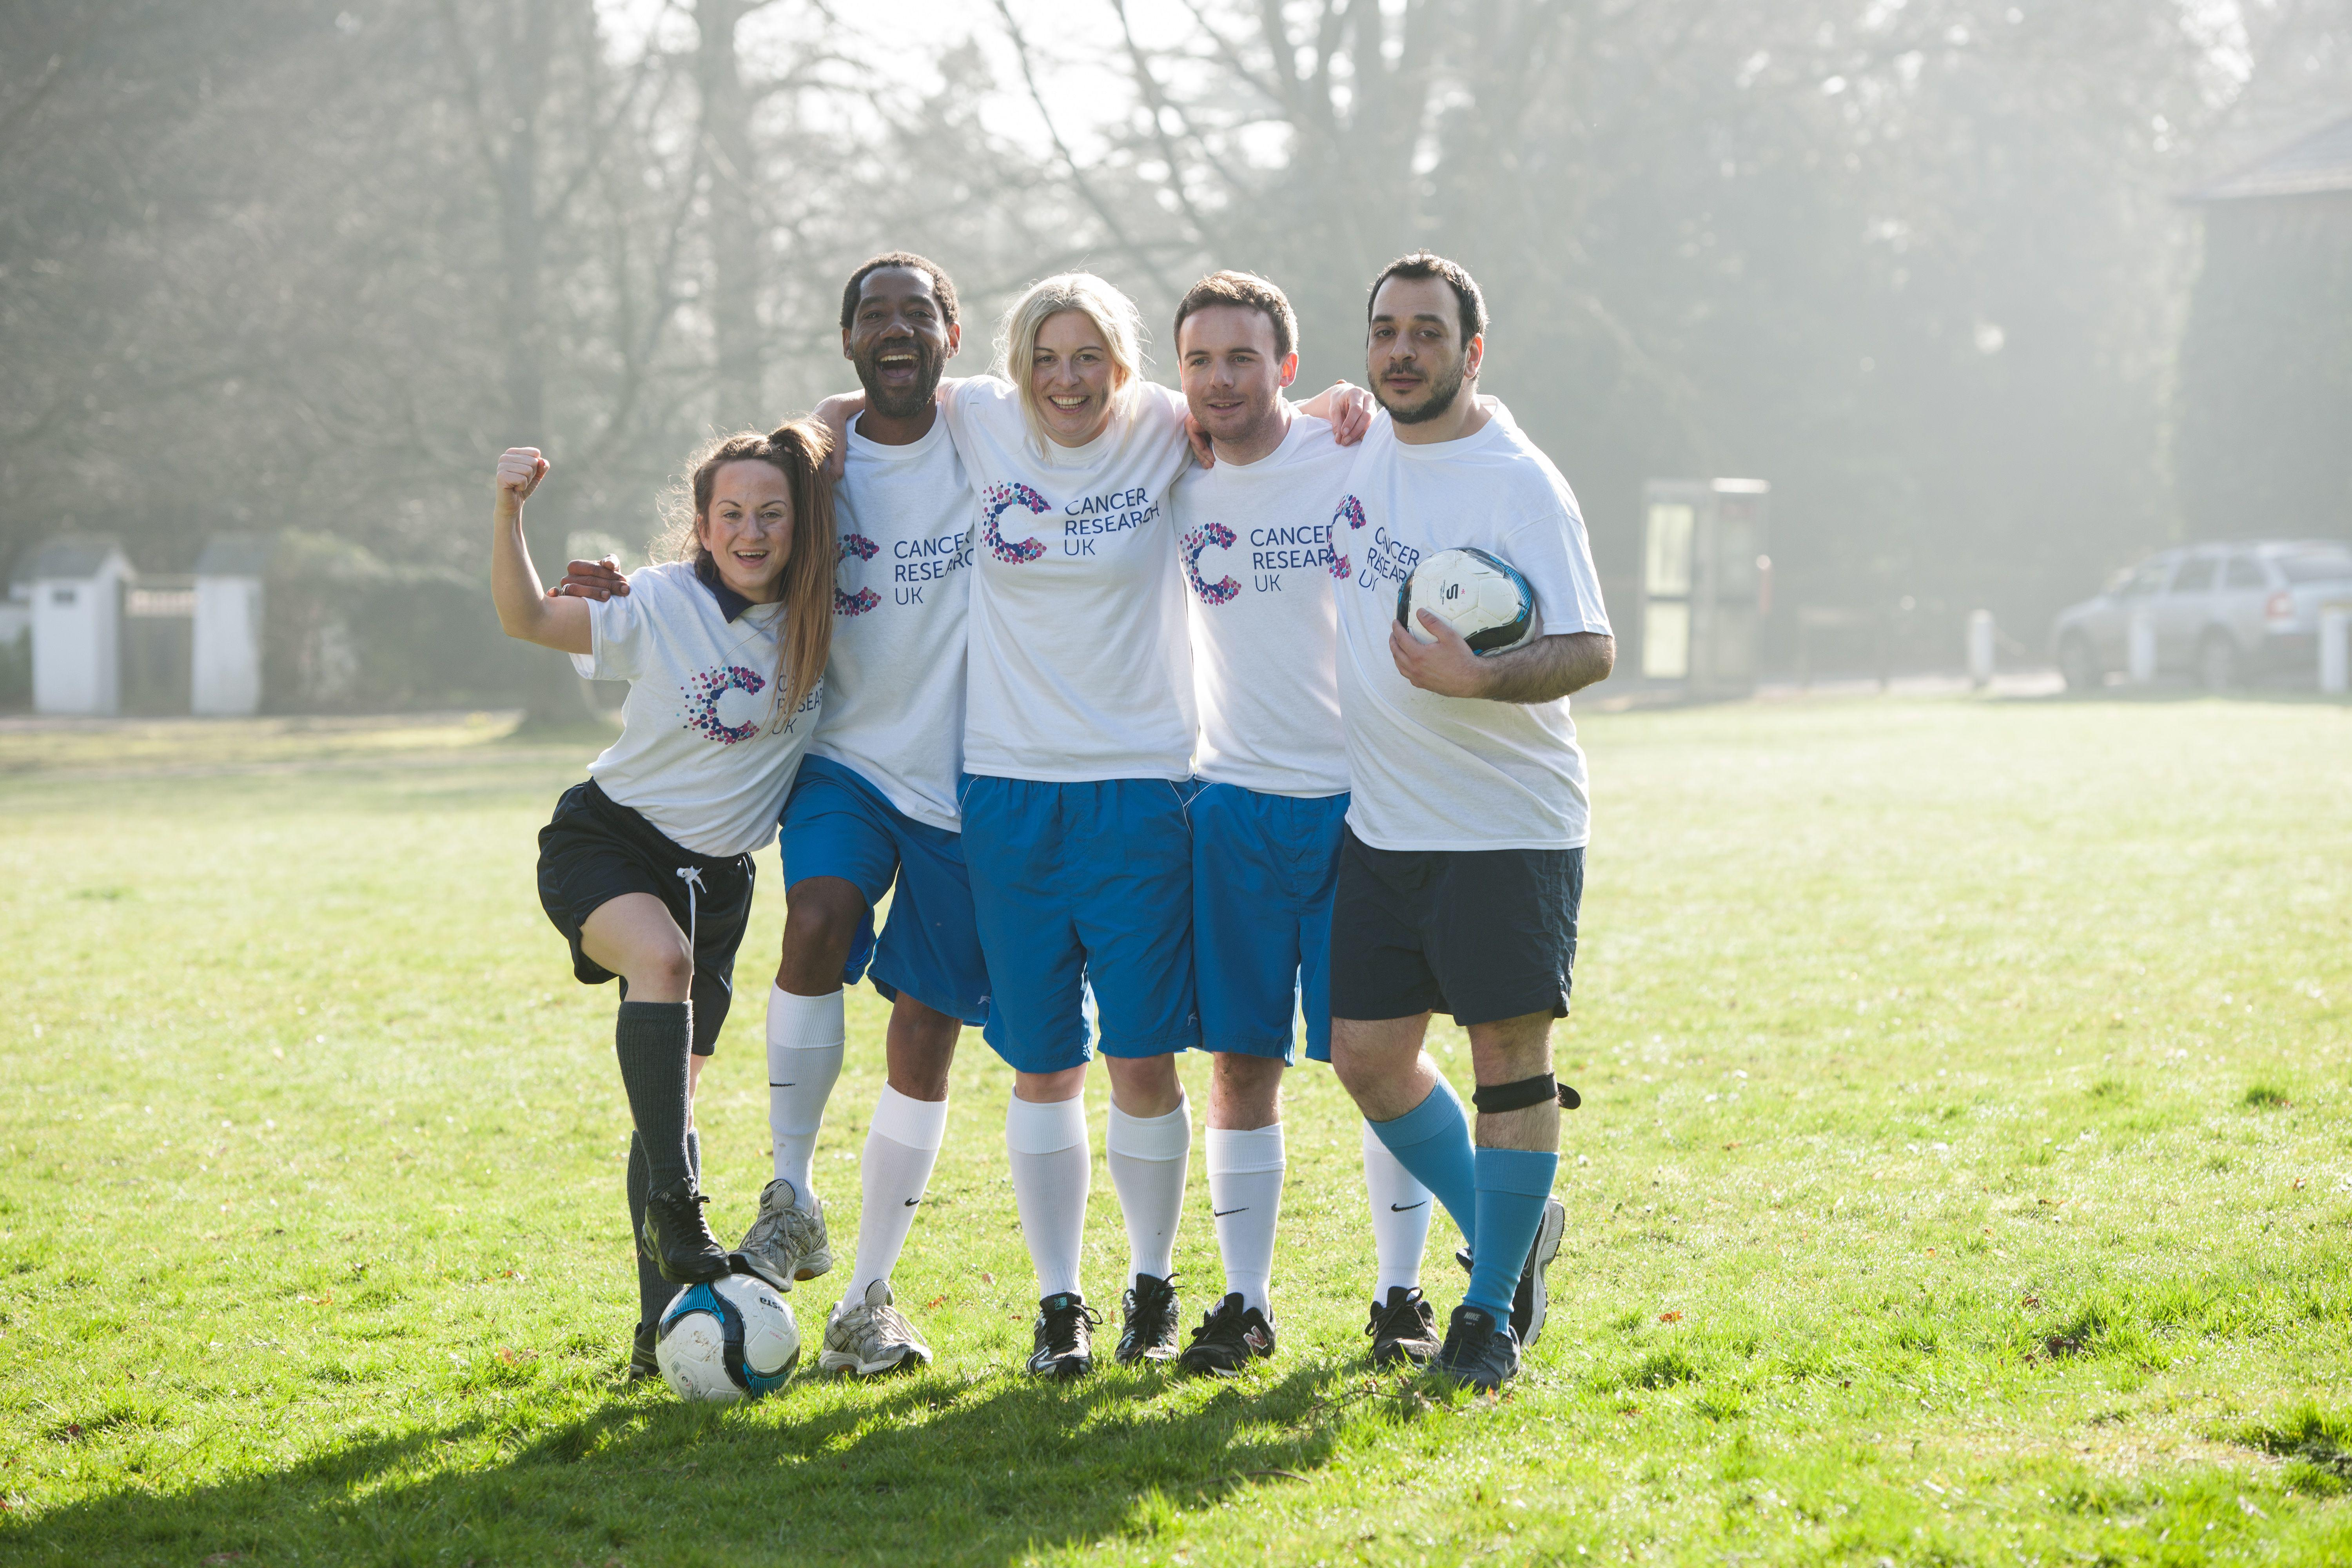 Five people with their arms around each other wearing football kit and holding a football